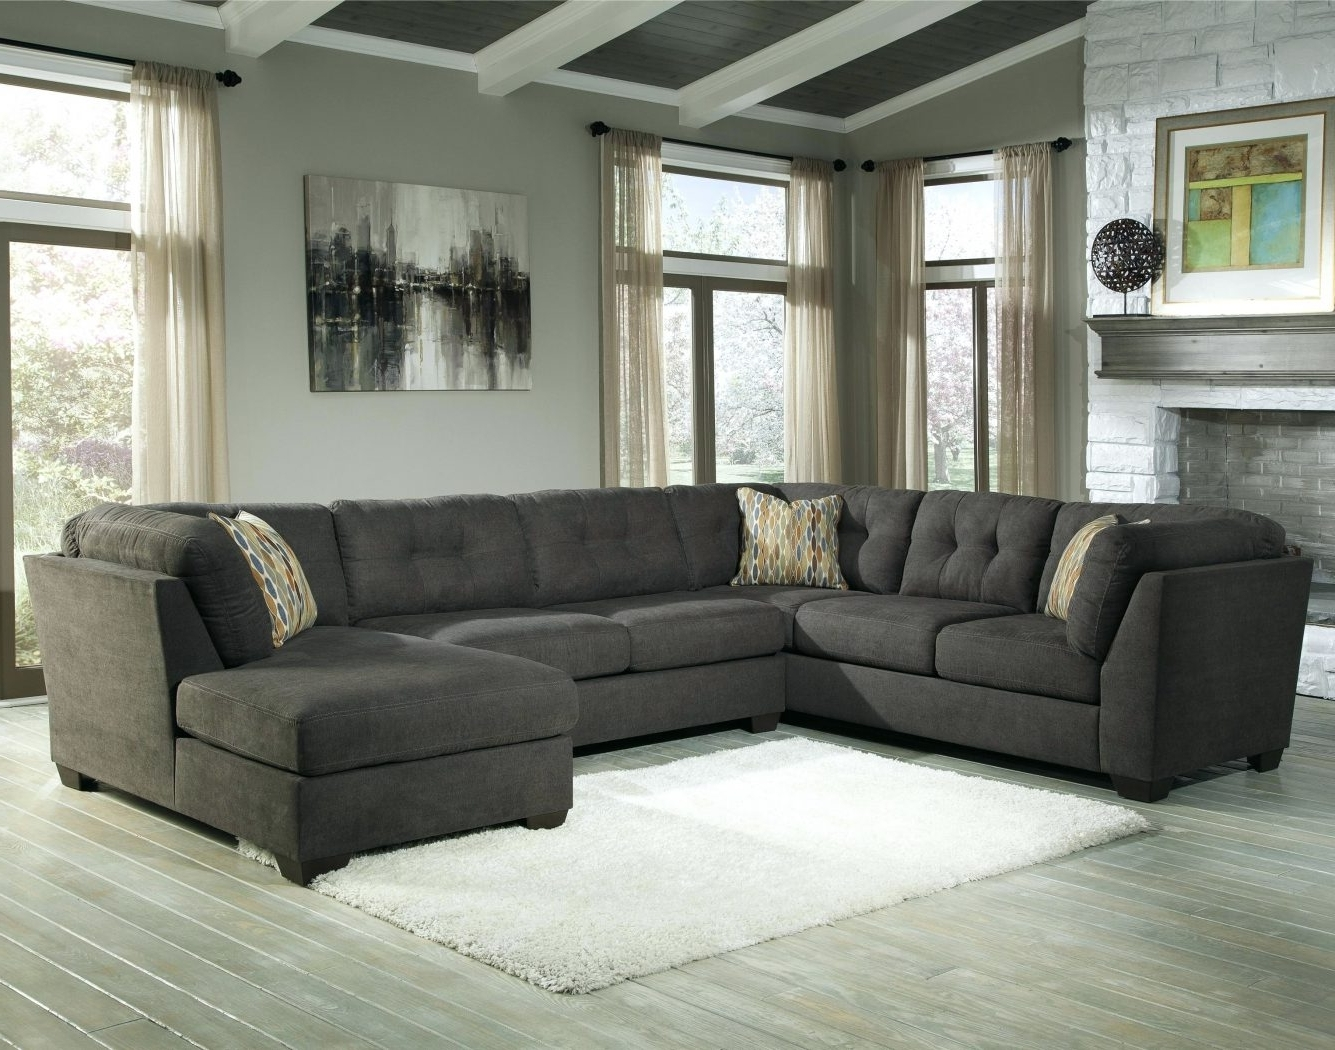 Huge Sofas – Home Design Ideas And Pictures Inside Most Recently Released Huge Sofas (View 7 of 15)